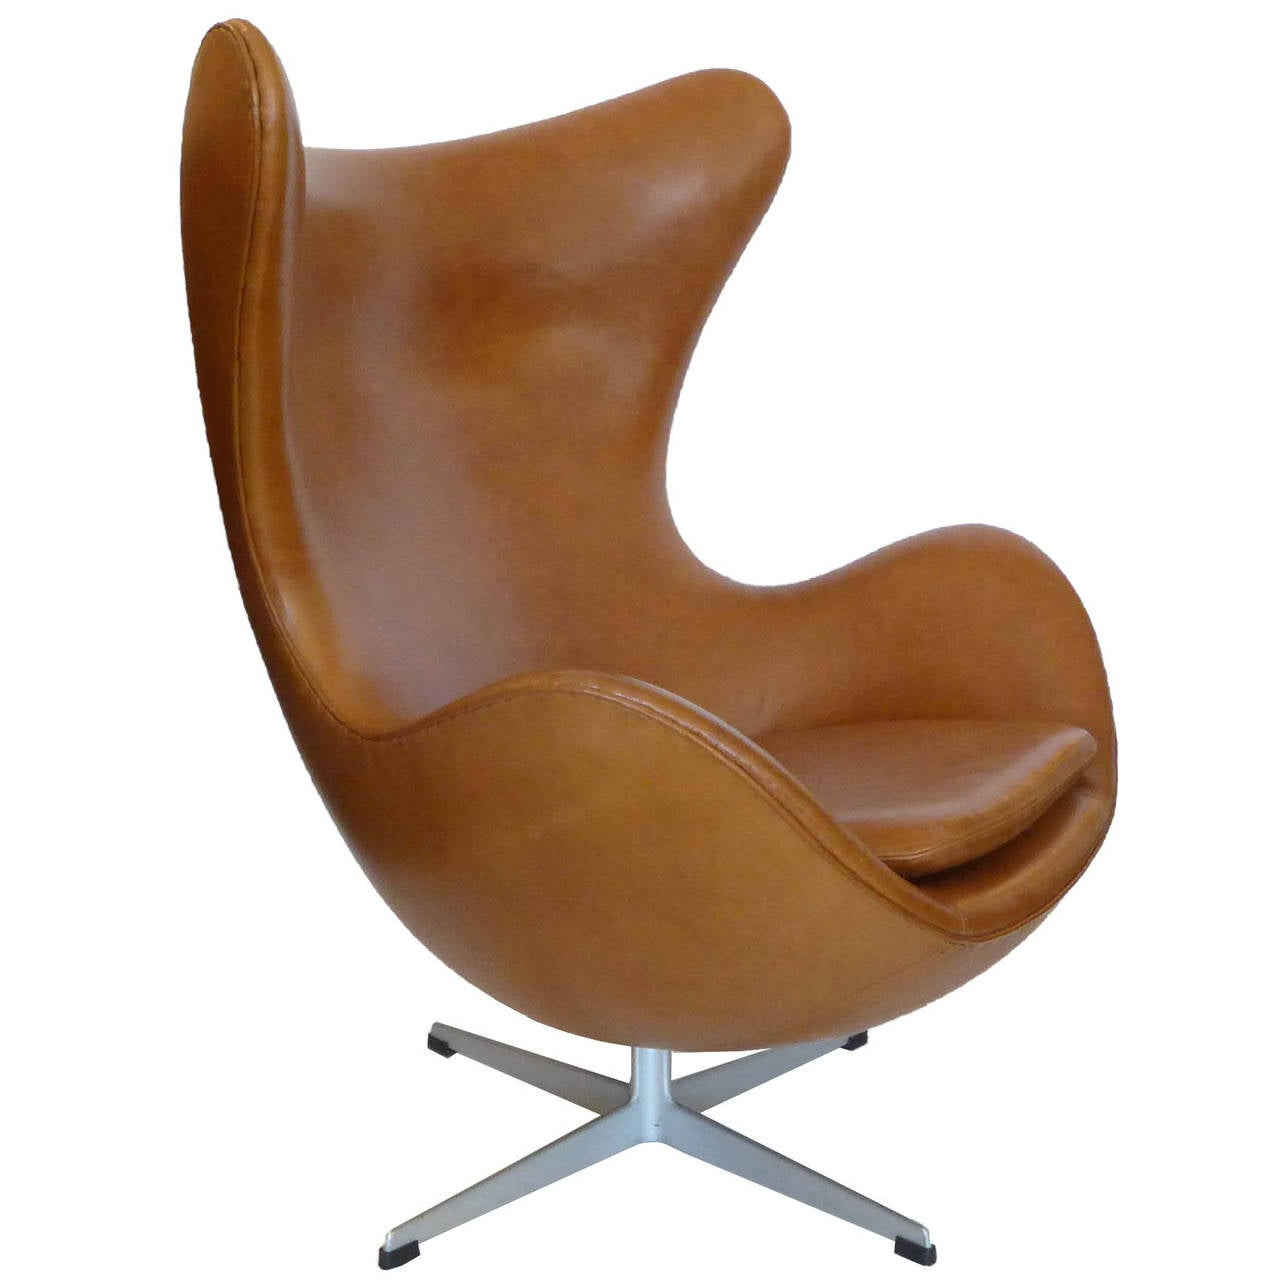 Brown Leather Egg Chair Original Carmel Tan Egg Chair And Ottoman By Arne Jacobsen